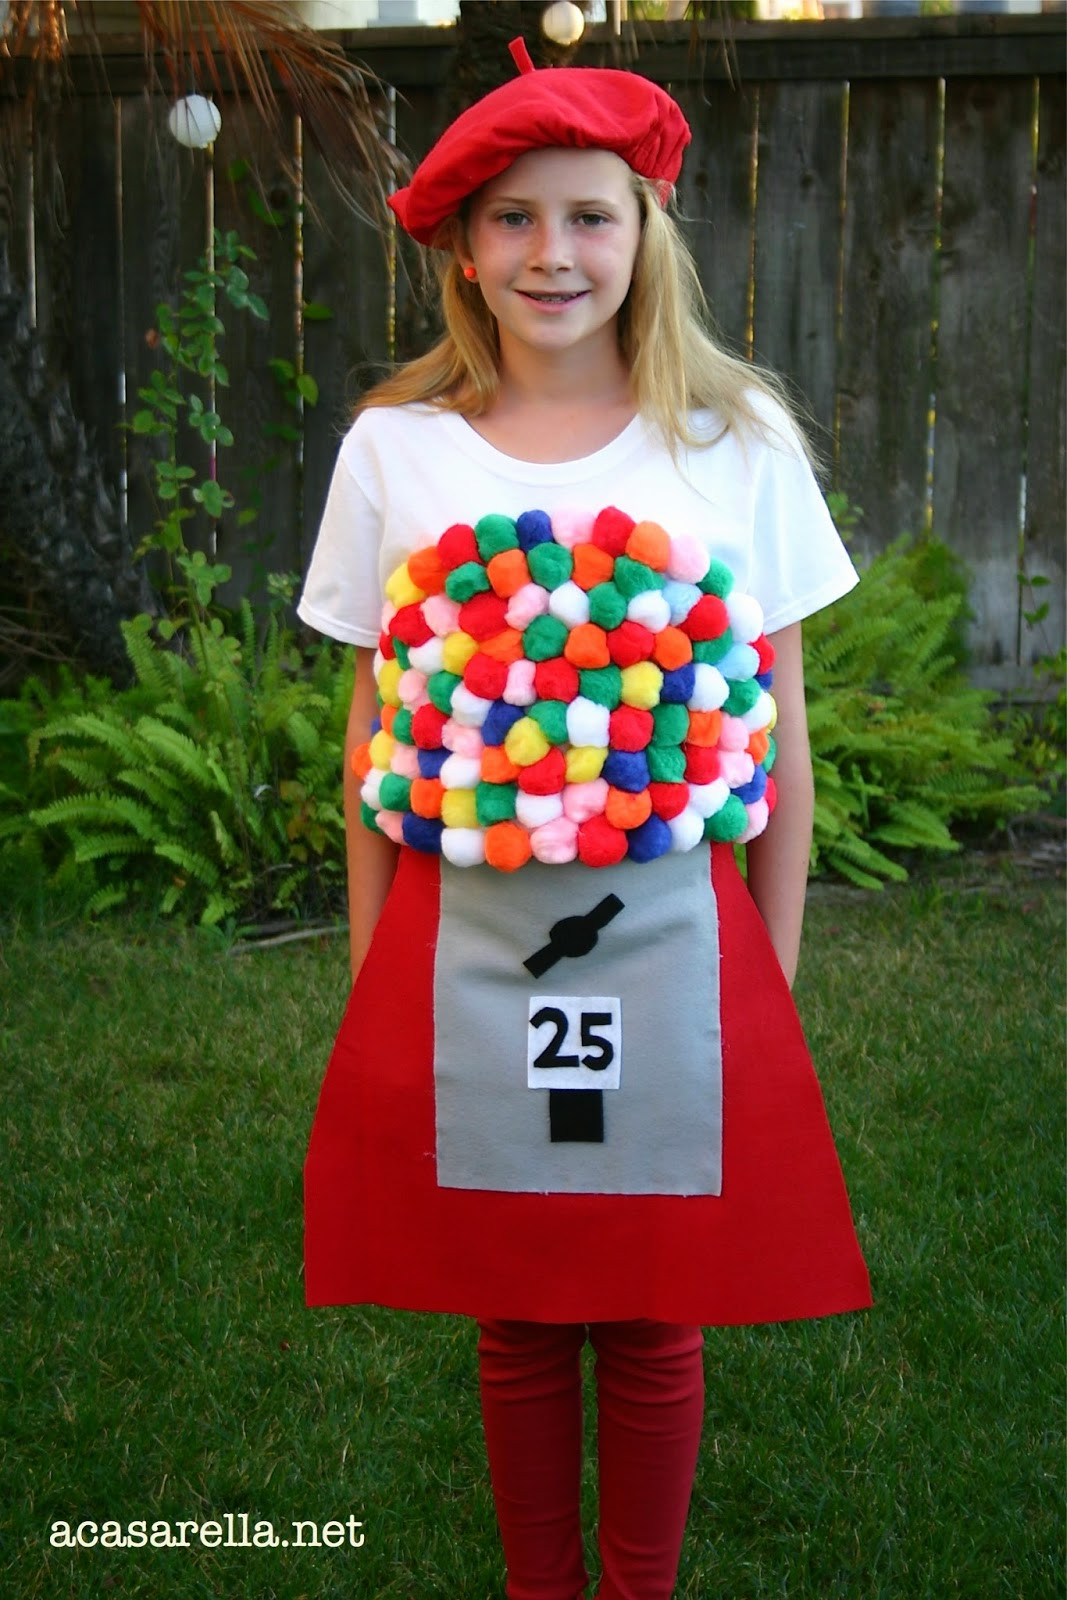 Best ideas about Couple Costumes DIY . Save or Pin 15 Amazing and Cute DIY Halloween Costumes Kids Edition Now.